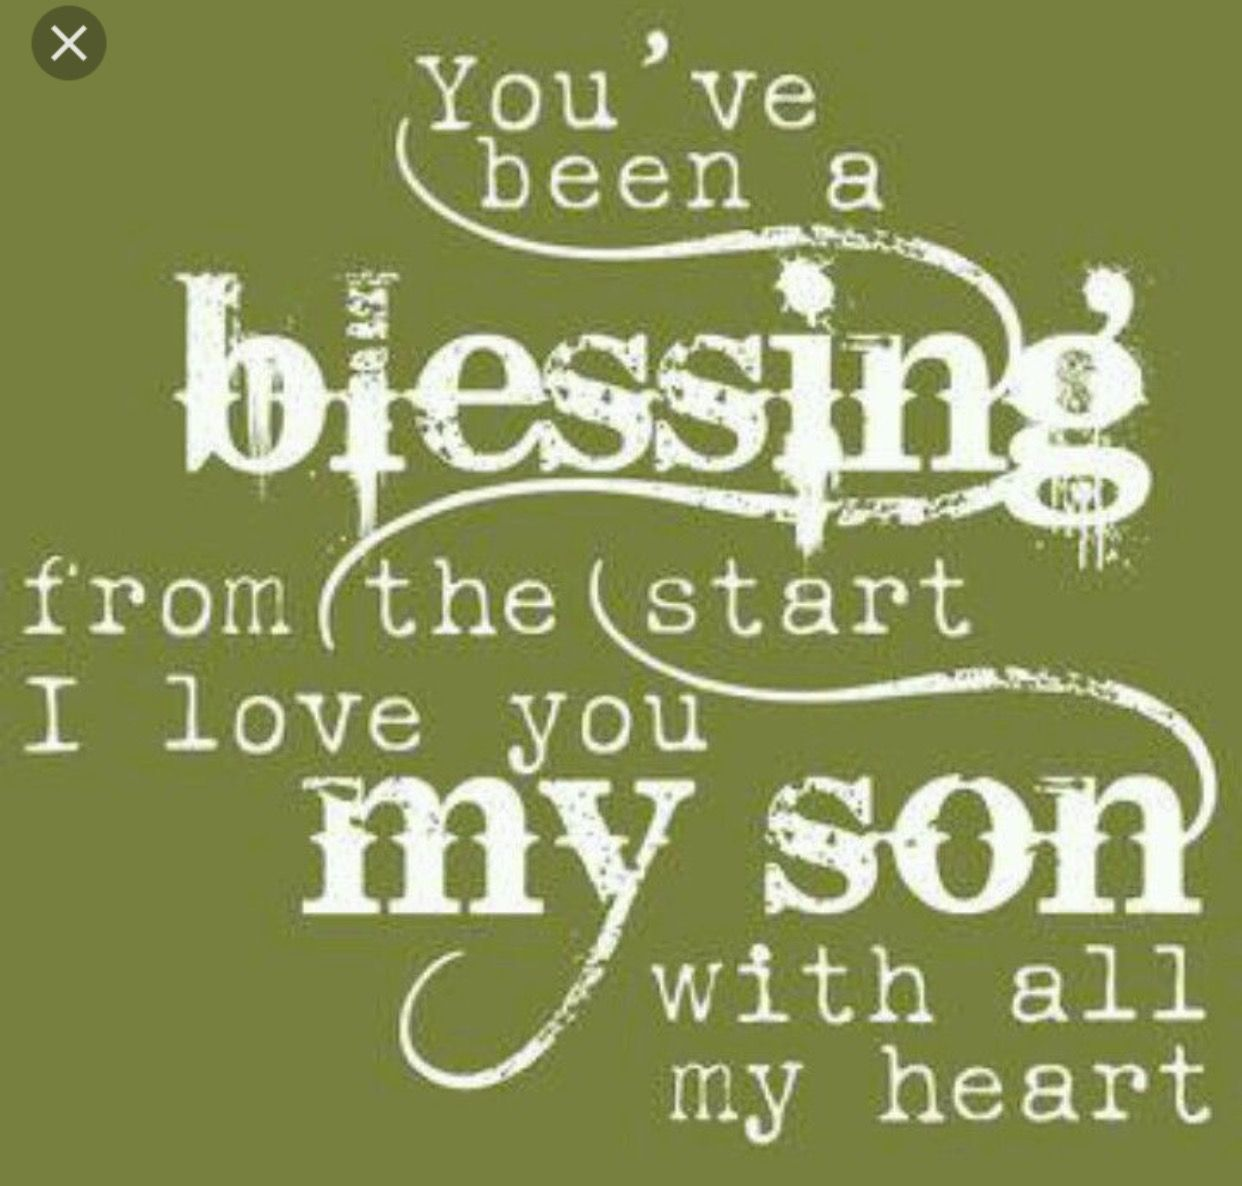 Love My Son Quotes Endearing I Love You ❤️mom  My Son  Pinterest  Positive Messages